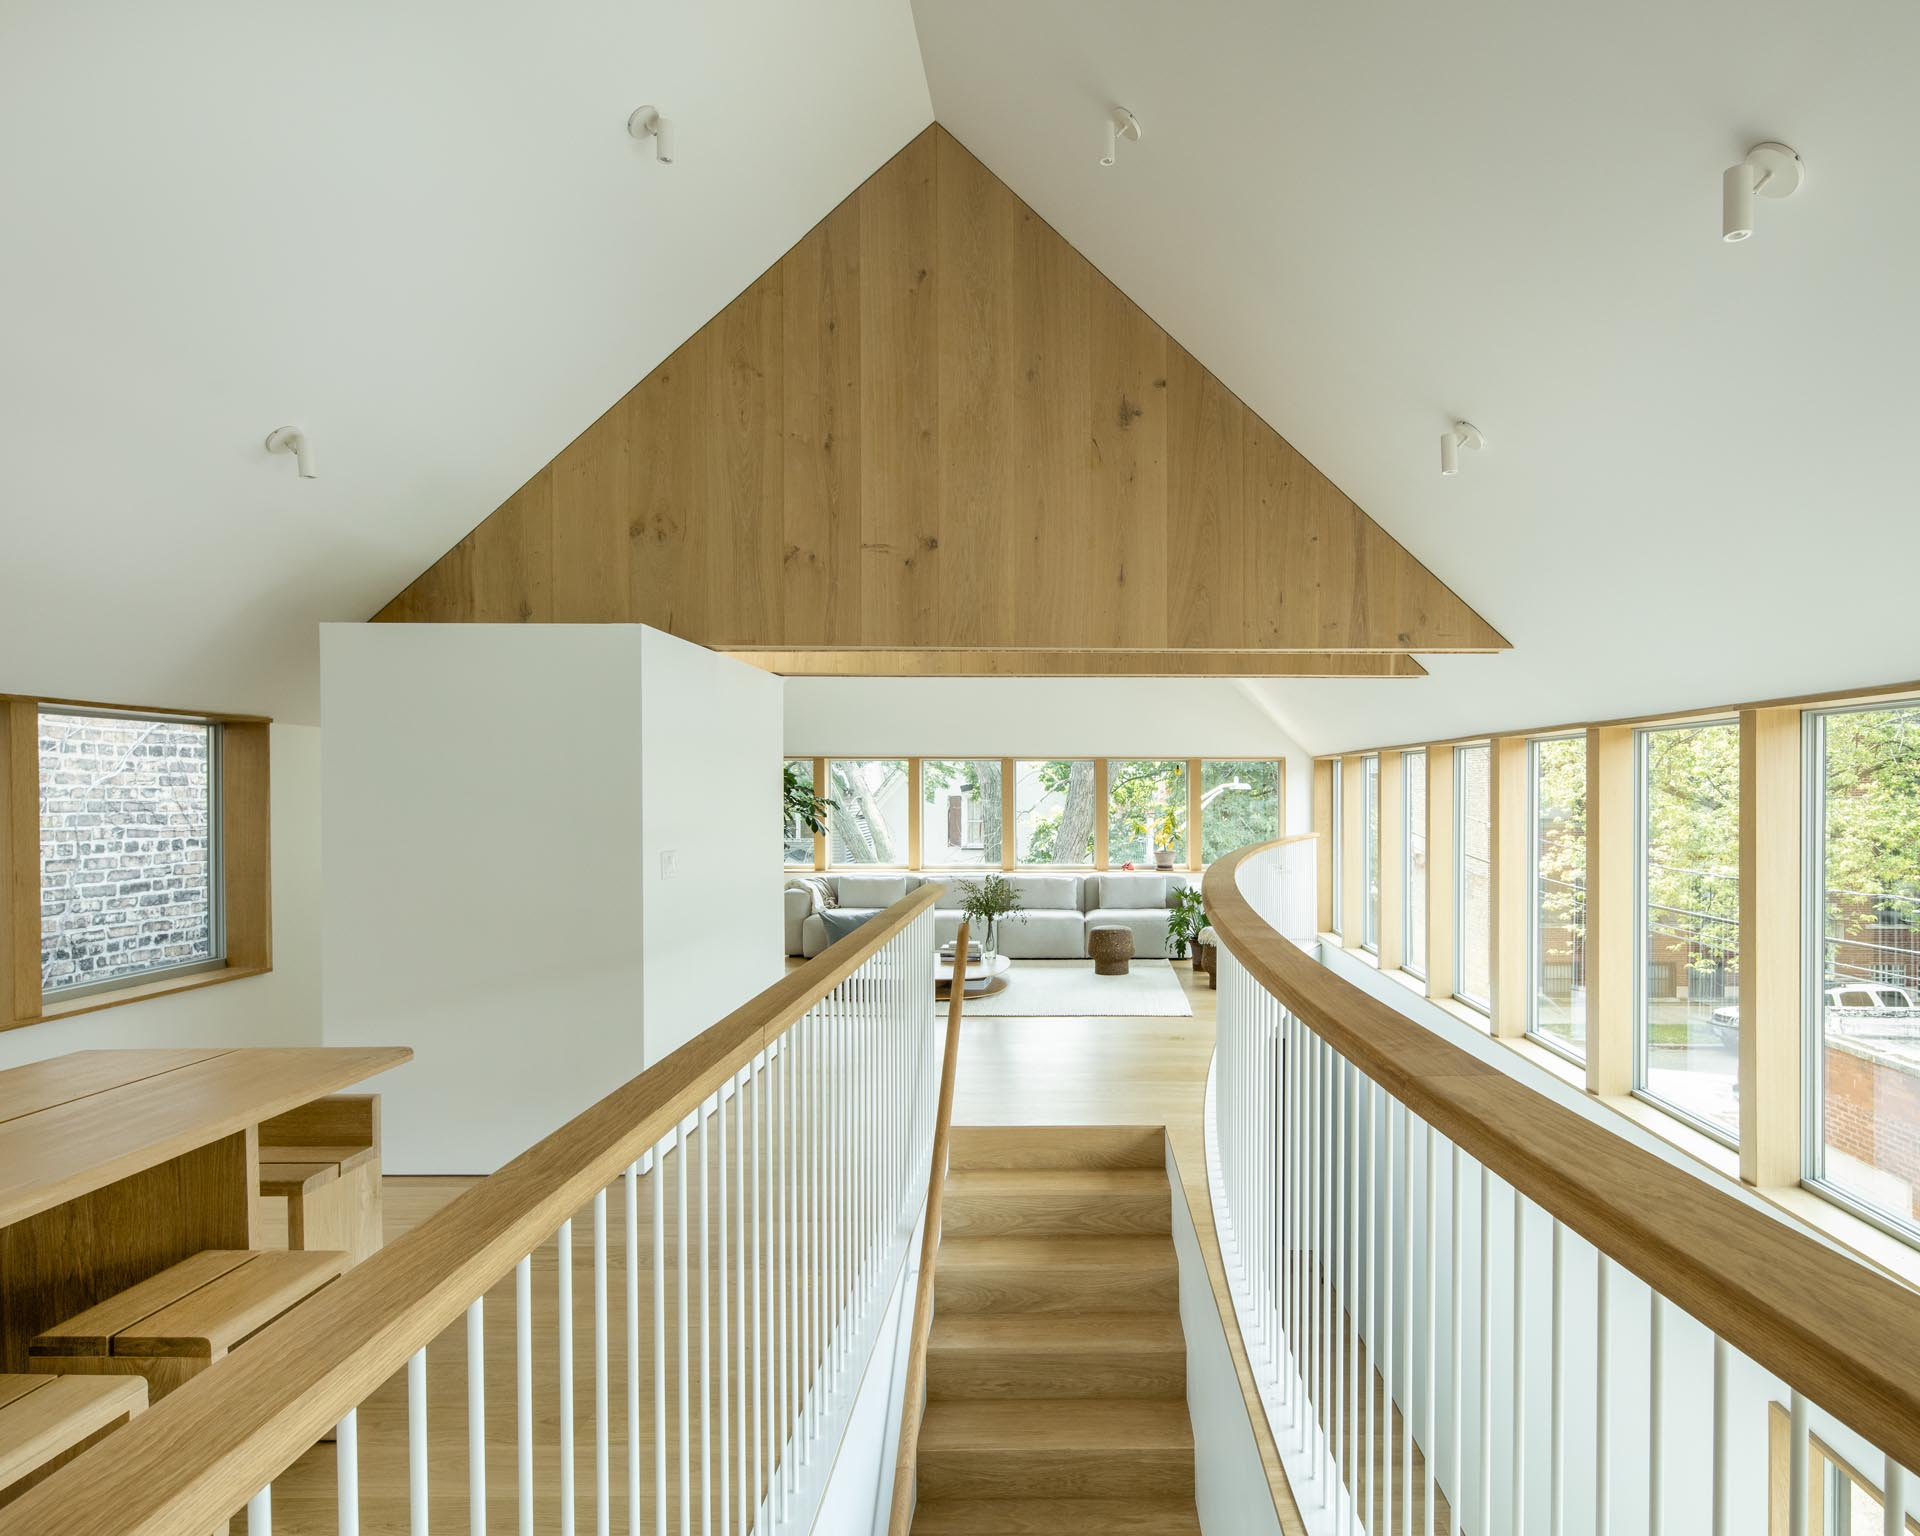 Wood stairs with a matching handrail and railing lead up to the social areas of this modern home.